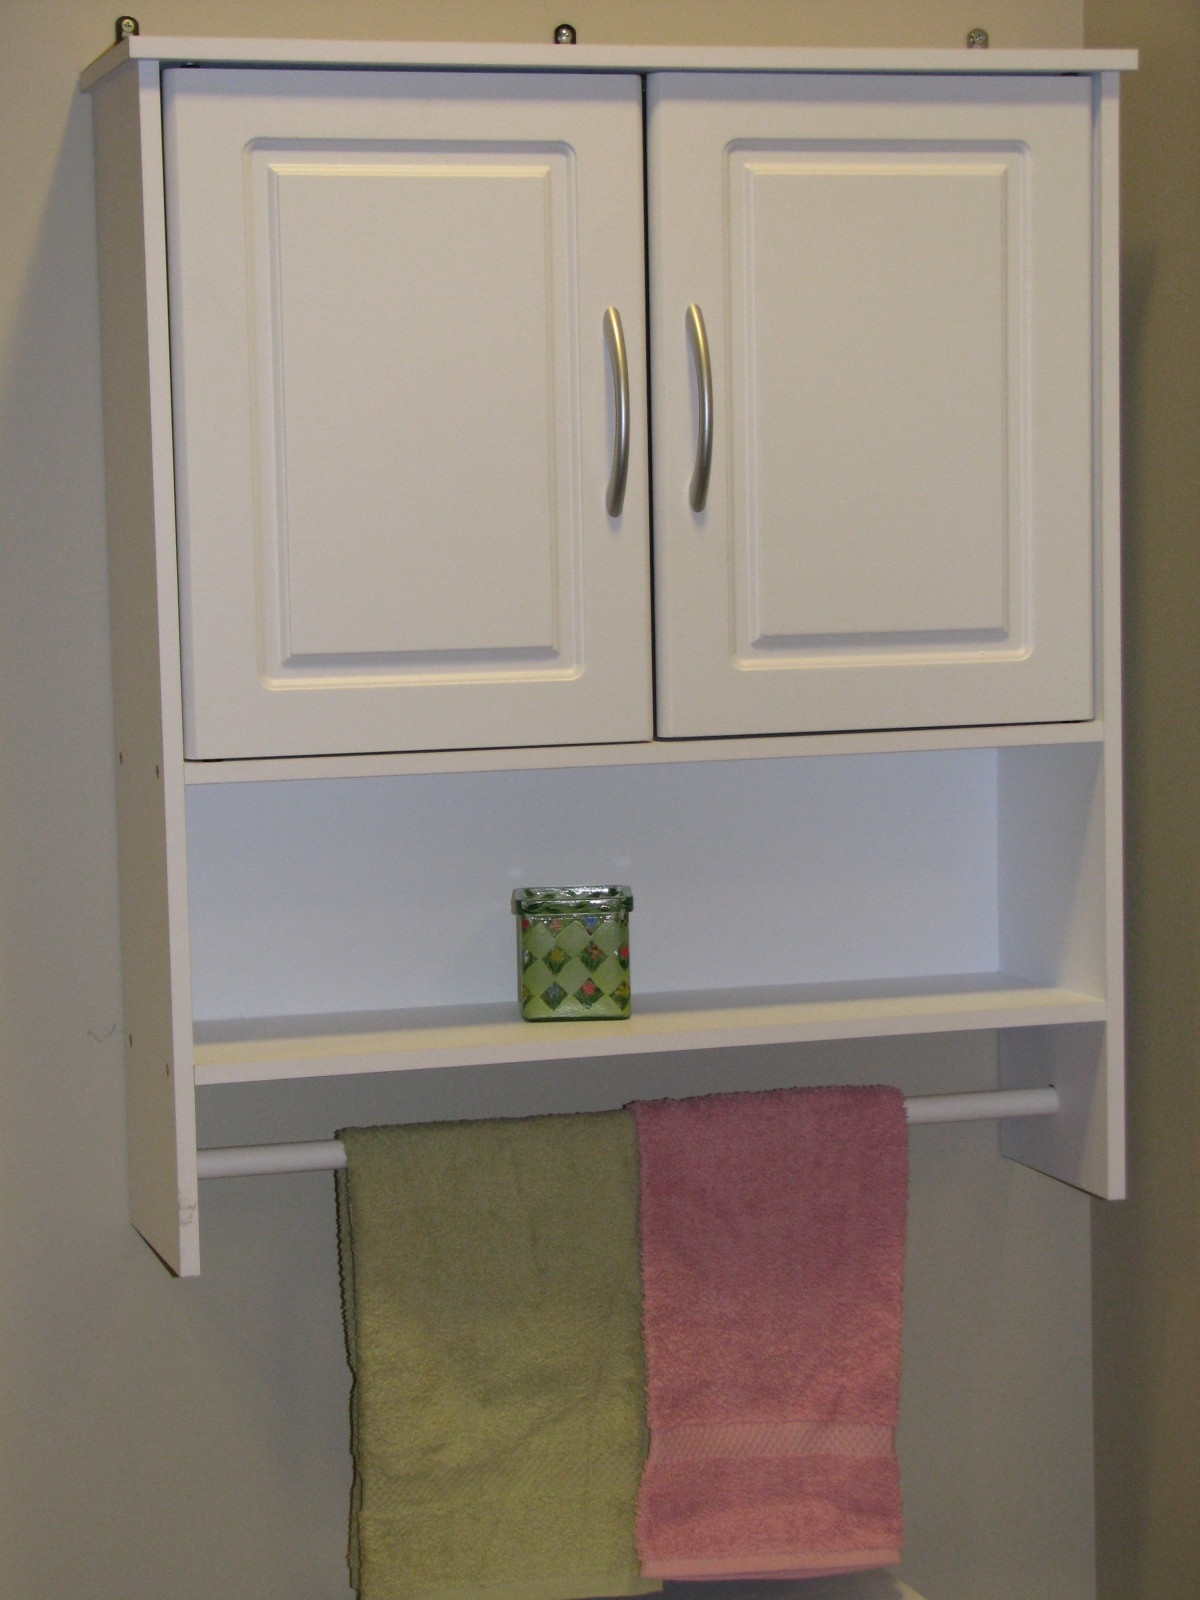 Permalink to Bathroom Cabinets With Towel Bar